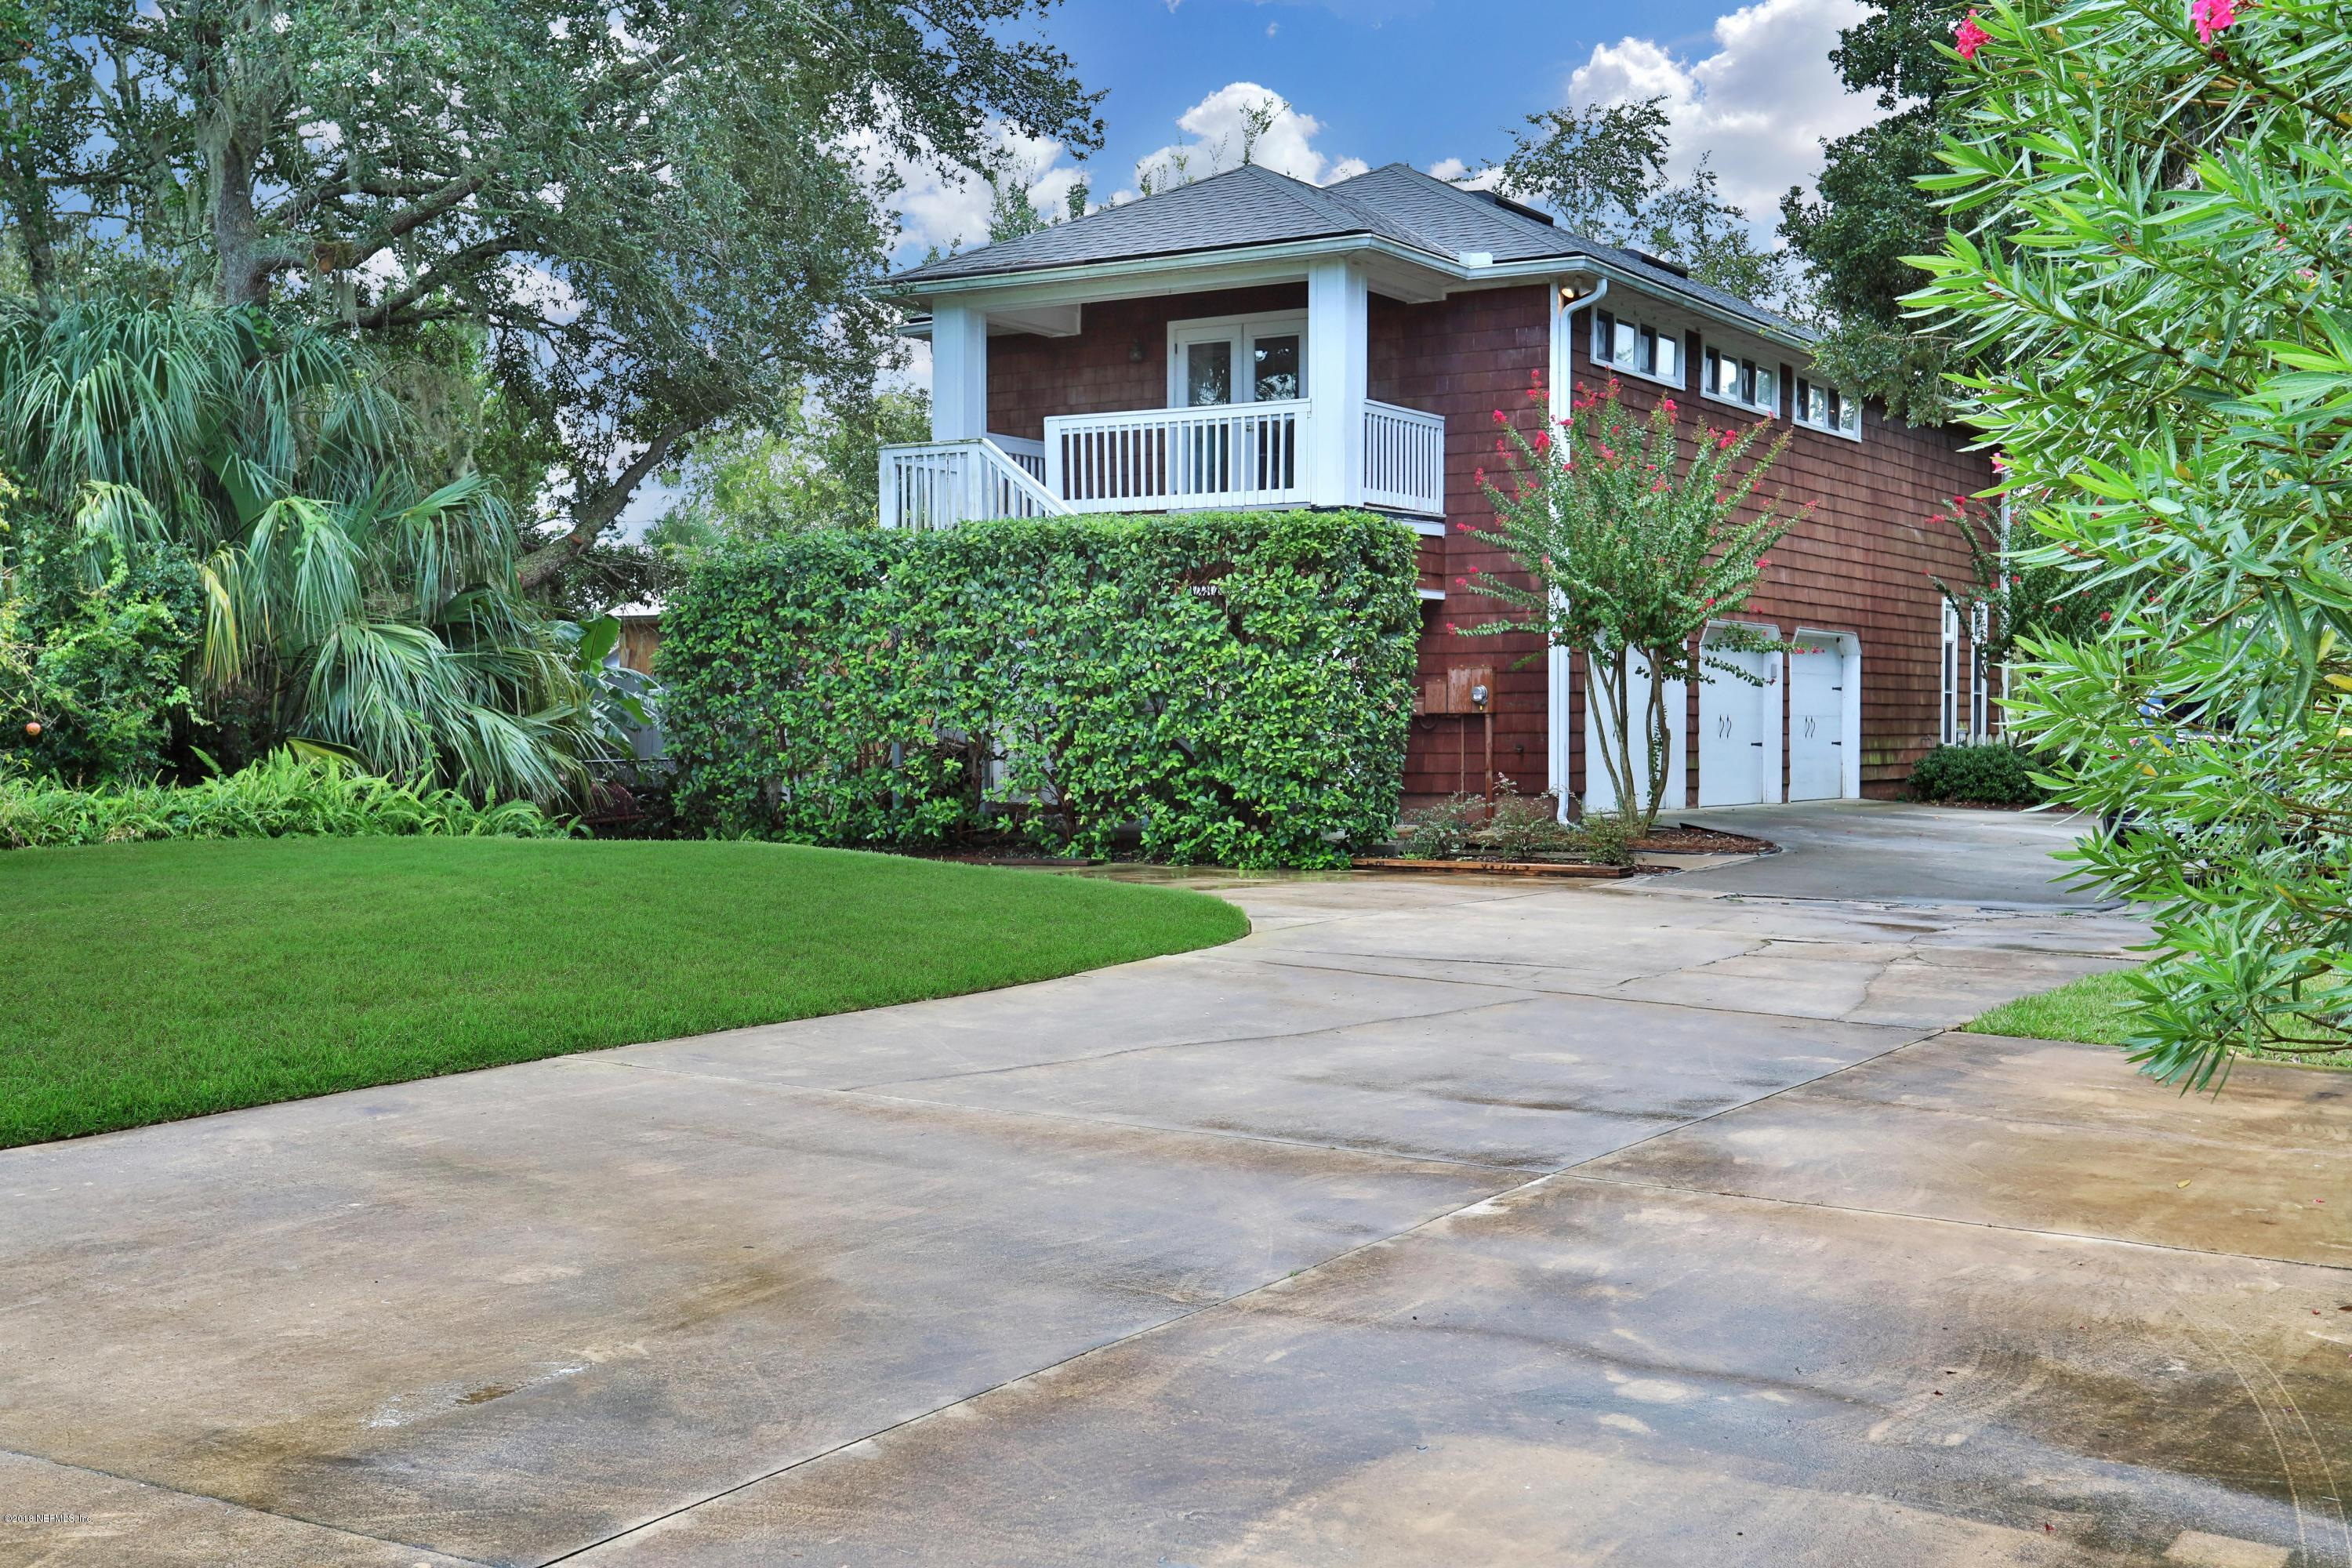 411 1/2 ROSCOE, PONTE VEDRA BEACH, FLORIDA 32082, 2 Bedrooms Bedrooms, ,1 BathroomBathrooms,Residential - single family,For sale,ROSCOE,983771